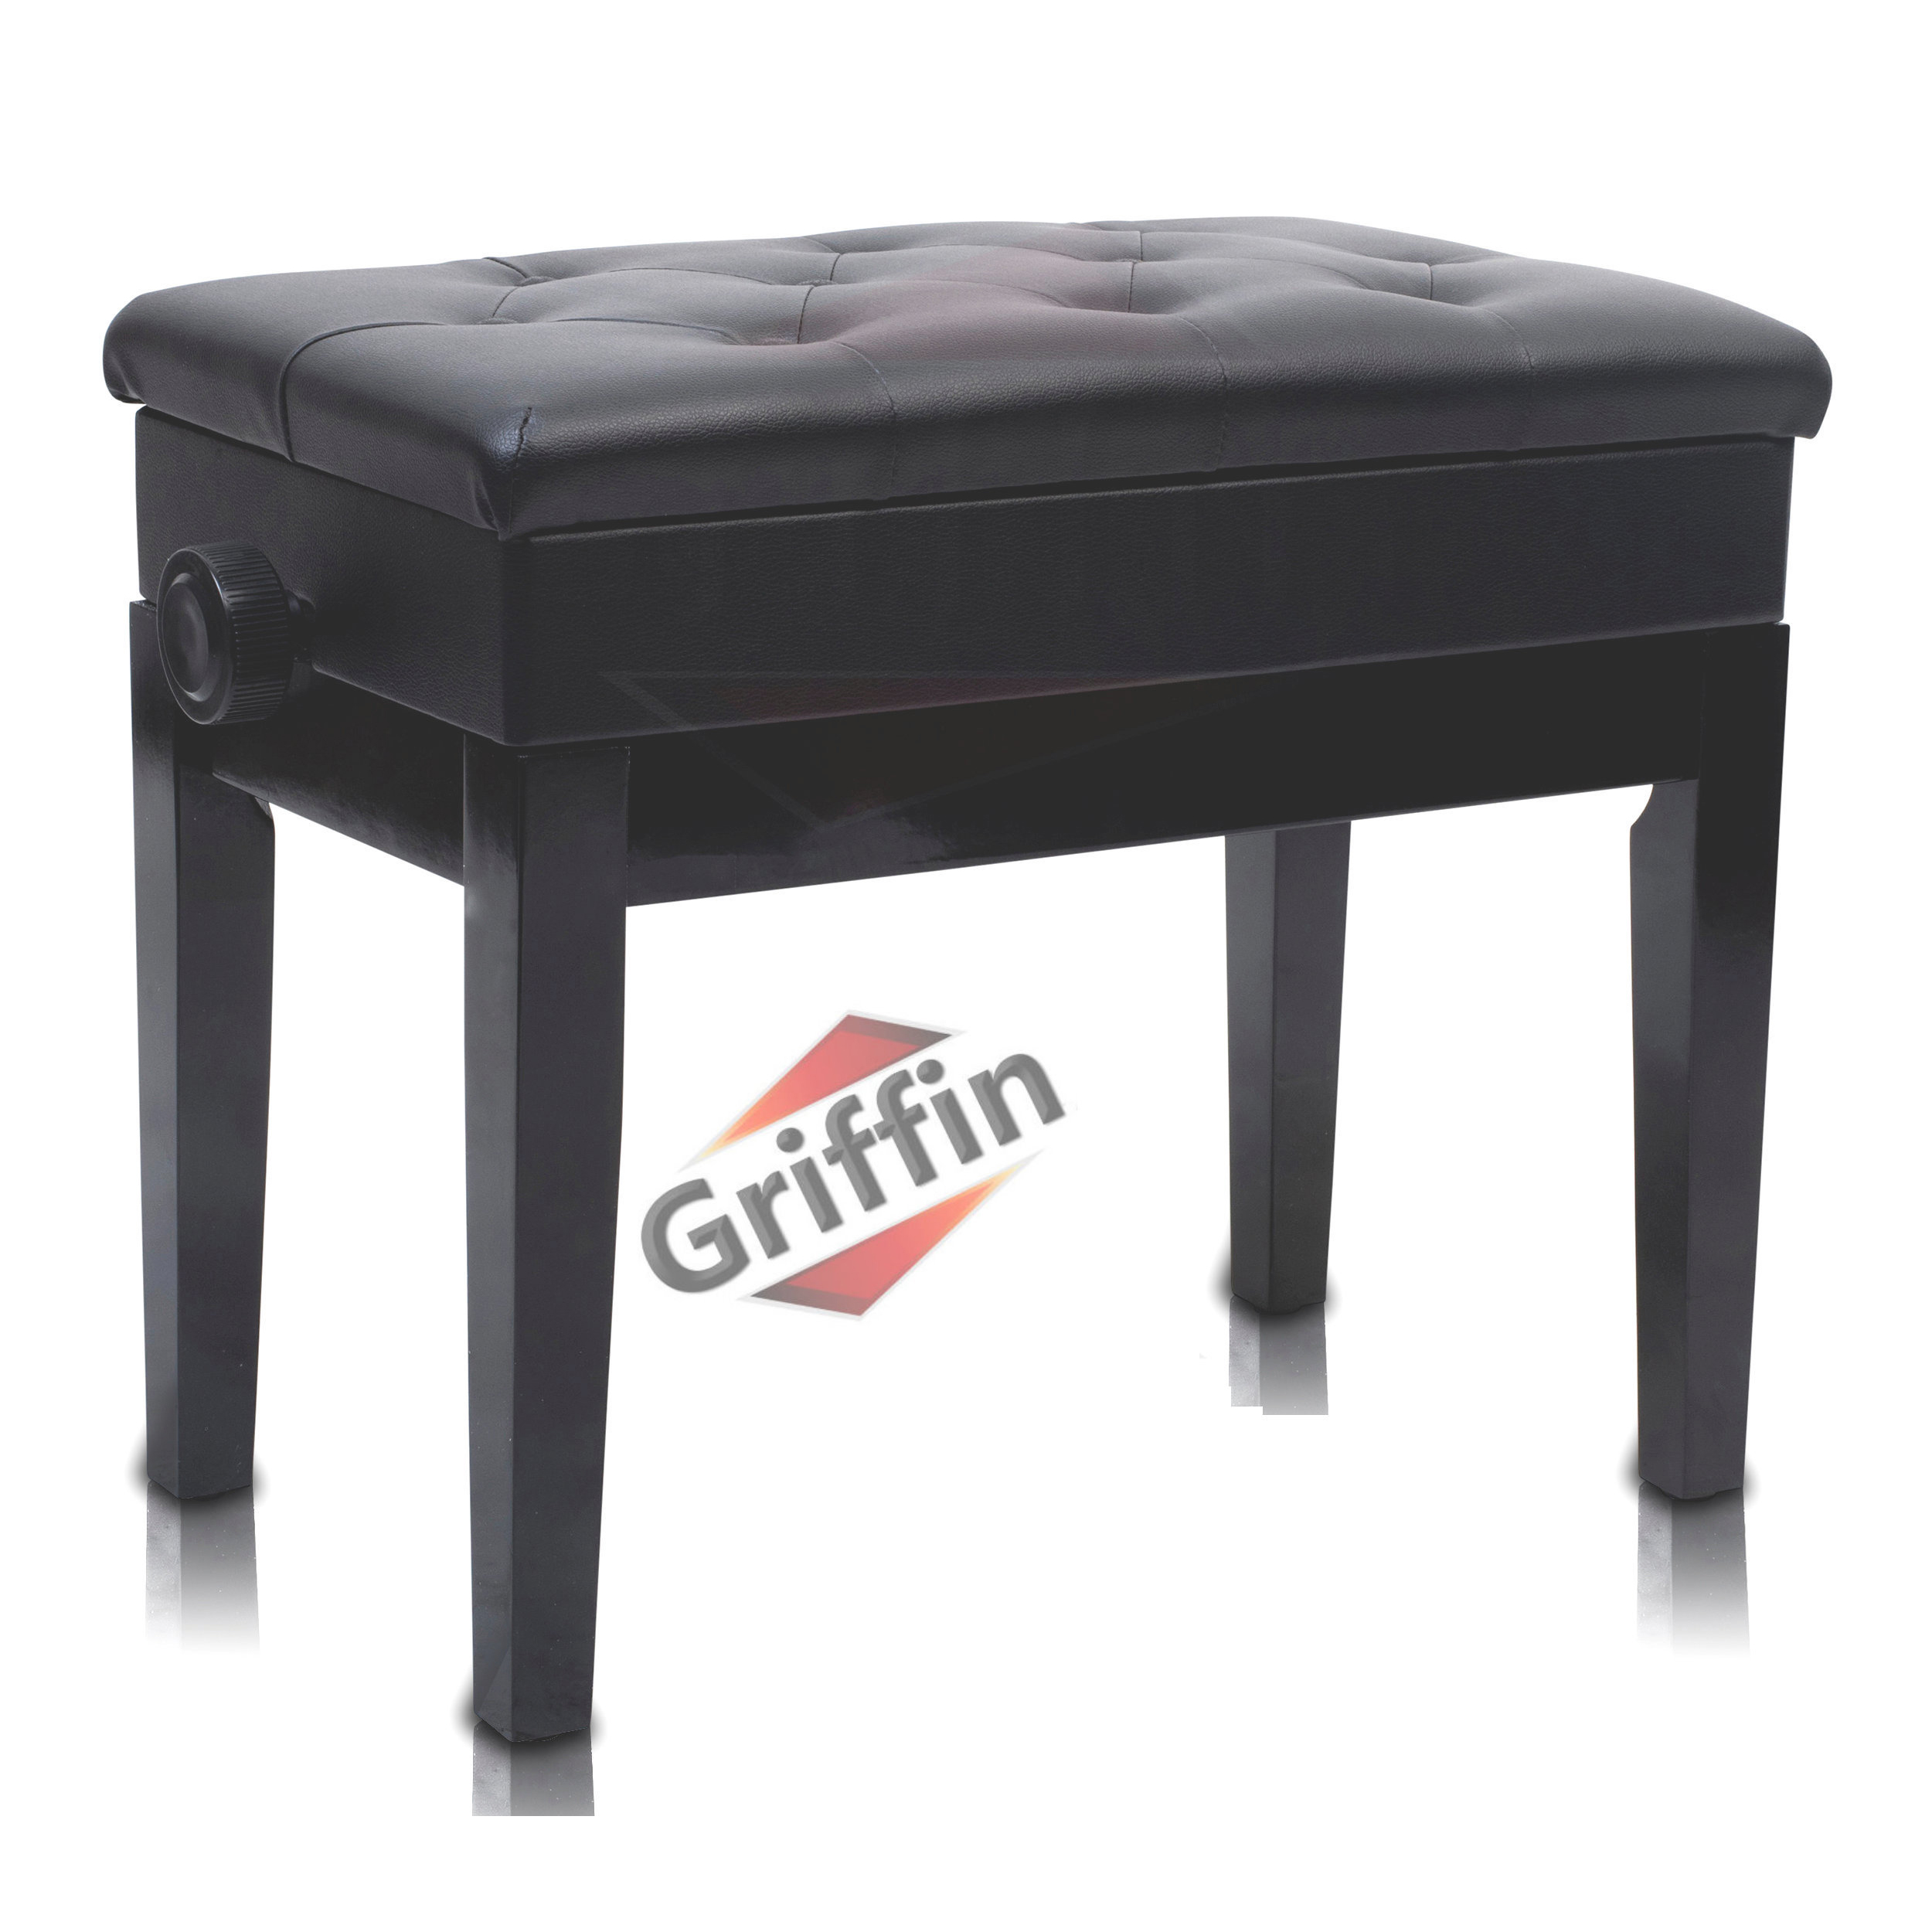 Adjustable Piano Bench with Storage Black Ebony Leather Wood Keyboard Seat by Griffin